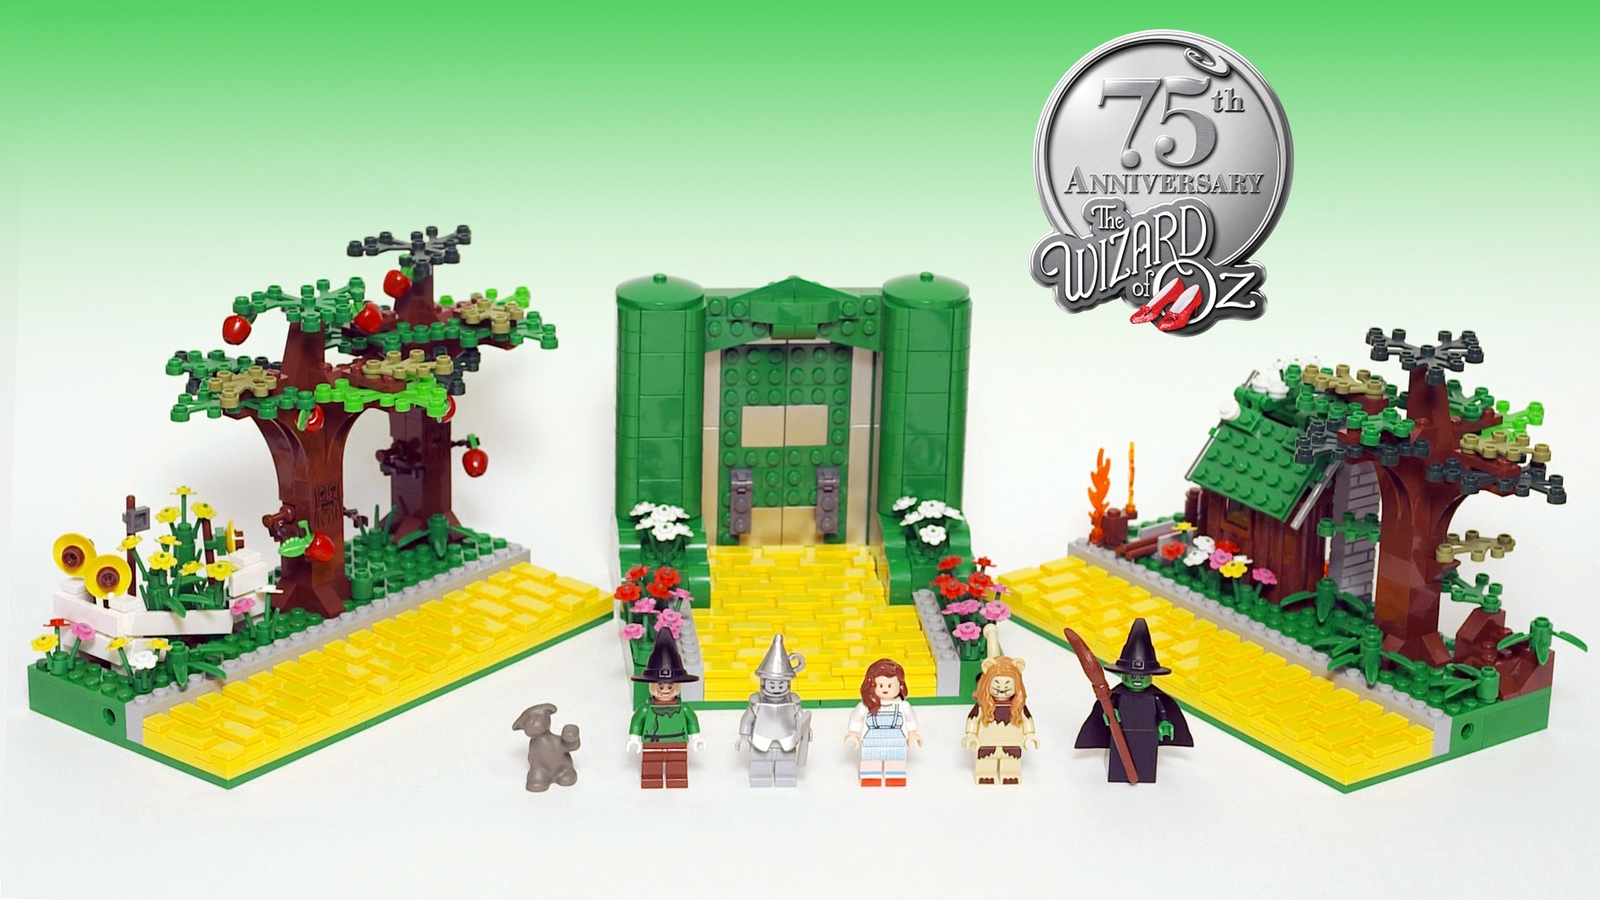 LEGO IDEAS - Product Ideas - The Road to Oz